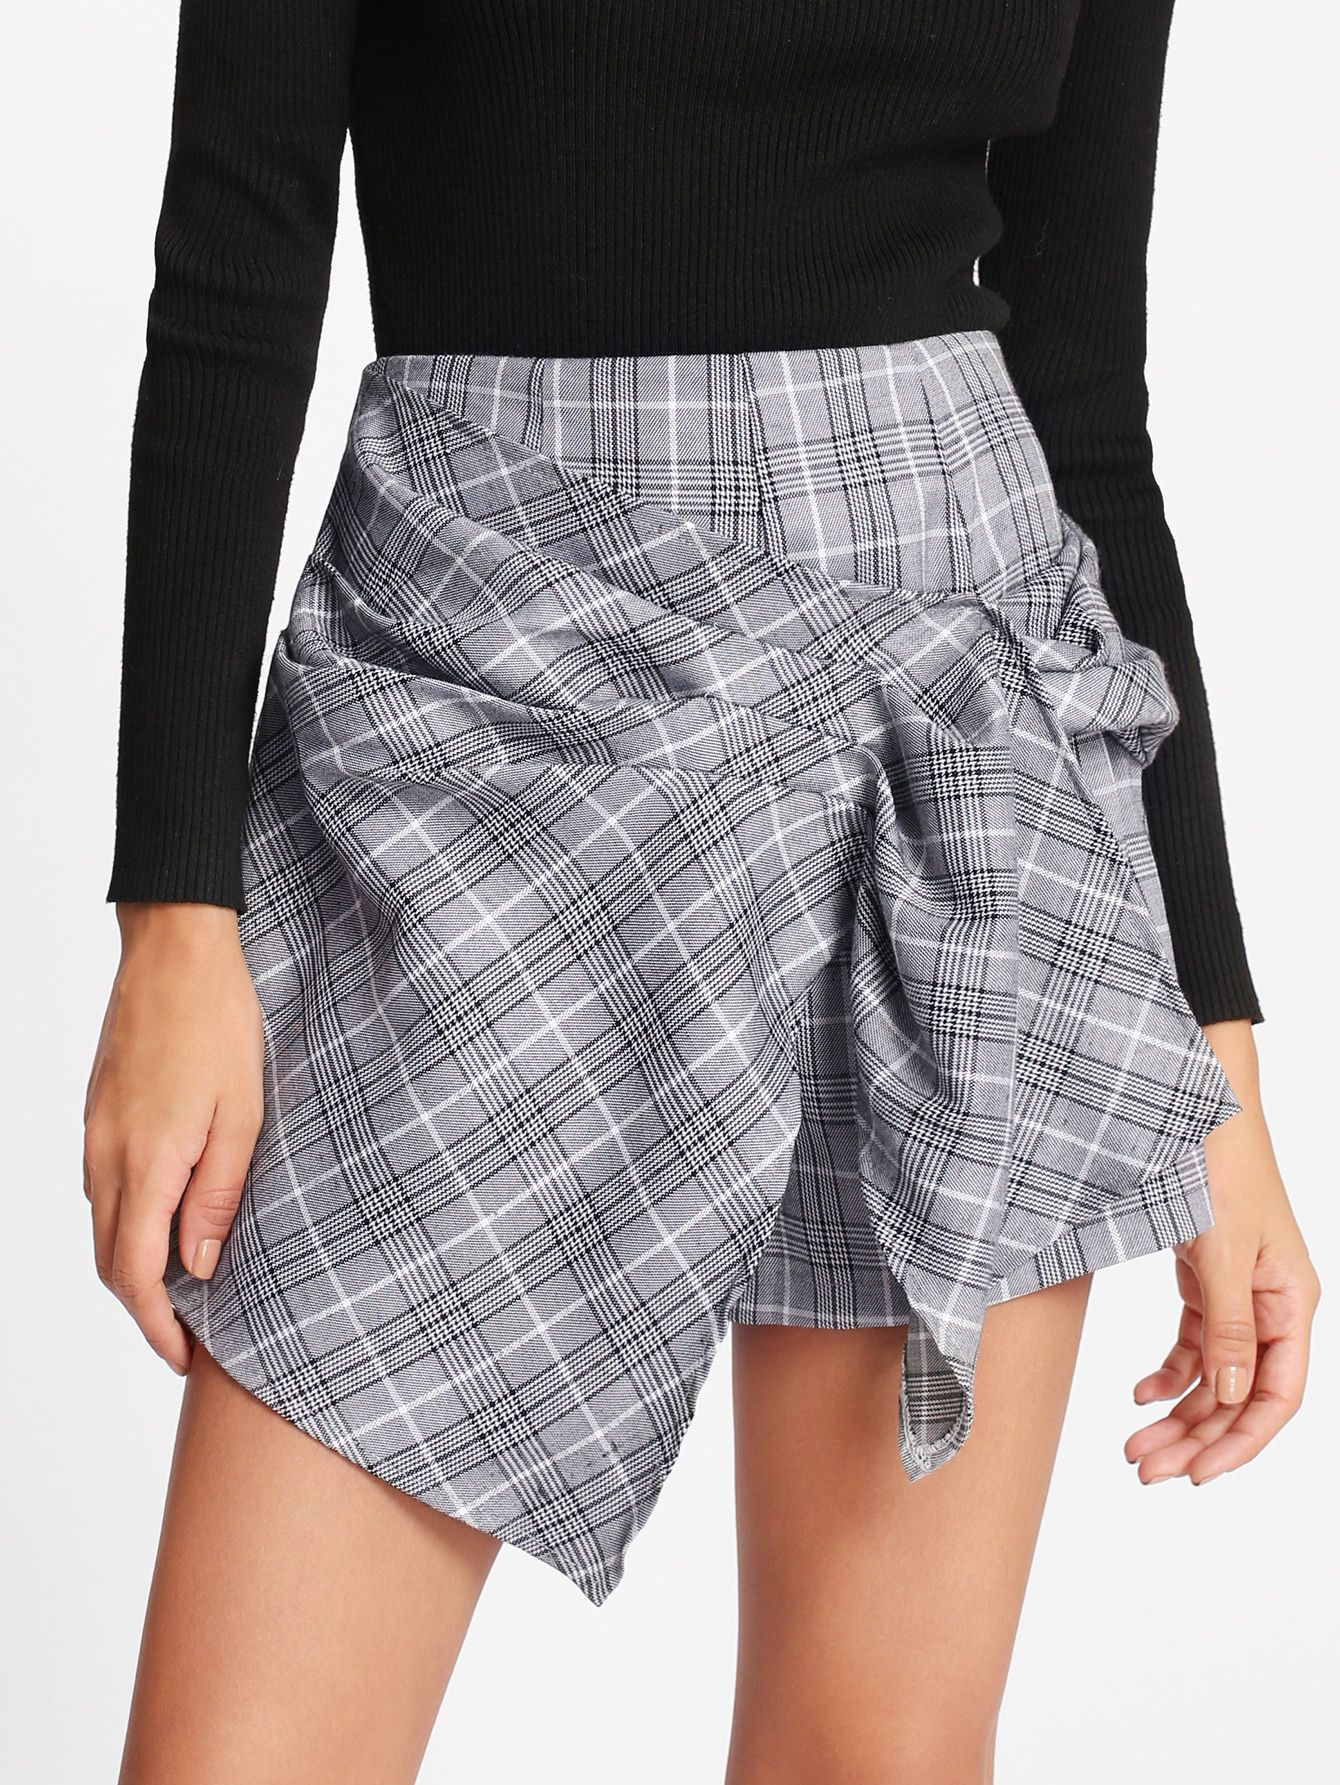 7d6e73e1b4 Shop Ruched Overlap Front Plaid Shorts online. SheIn offers Ruched Overlap  Front Plaid Shorts & more to fit your fashionable needs.